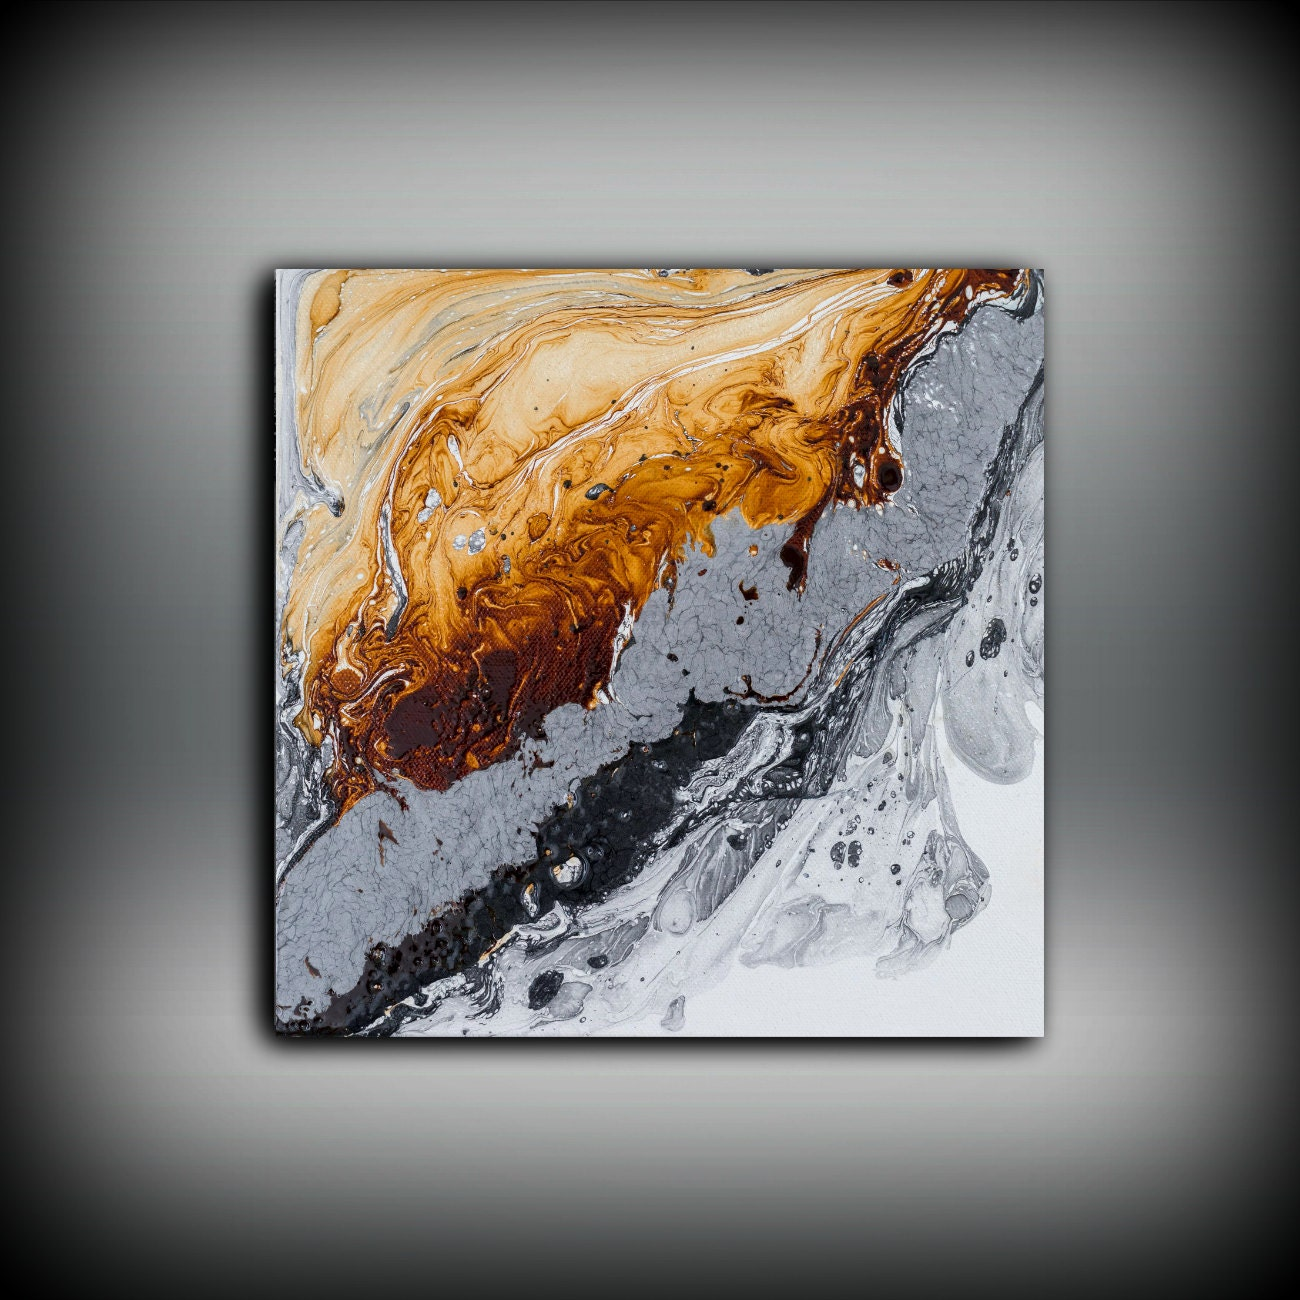 ORIGINAL Painting Art Painting Oil Painting Abstract Painting Black White Copper  Wall Hanging Small Wall Art Modern Wall Decor 10 X 10